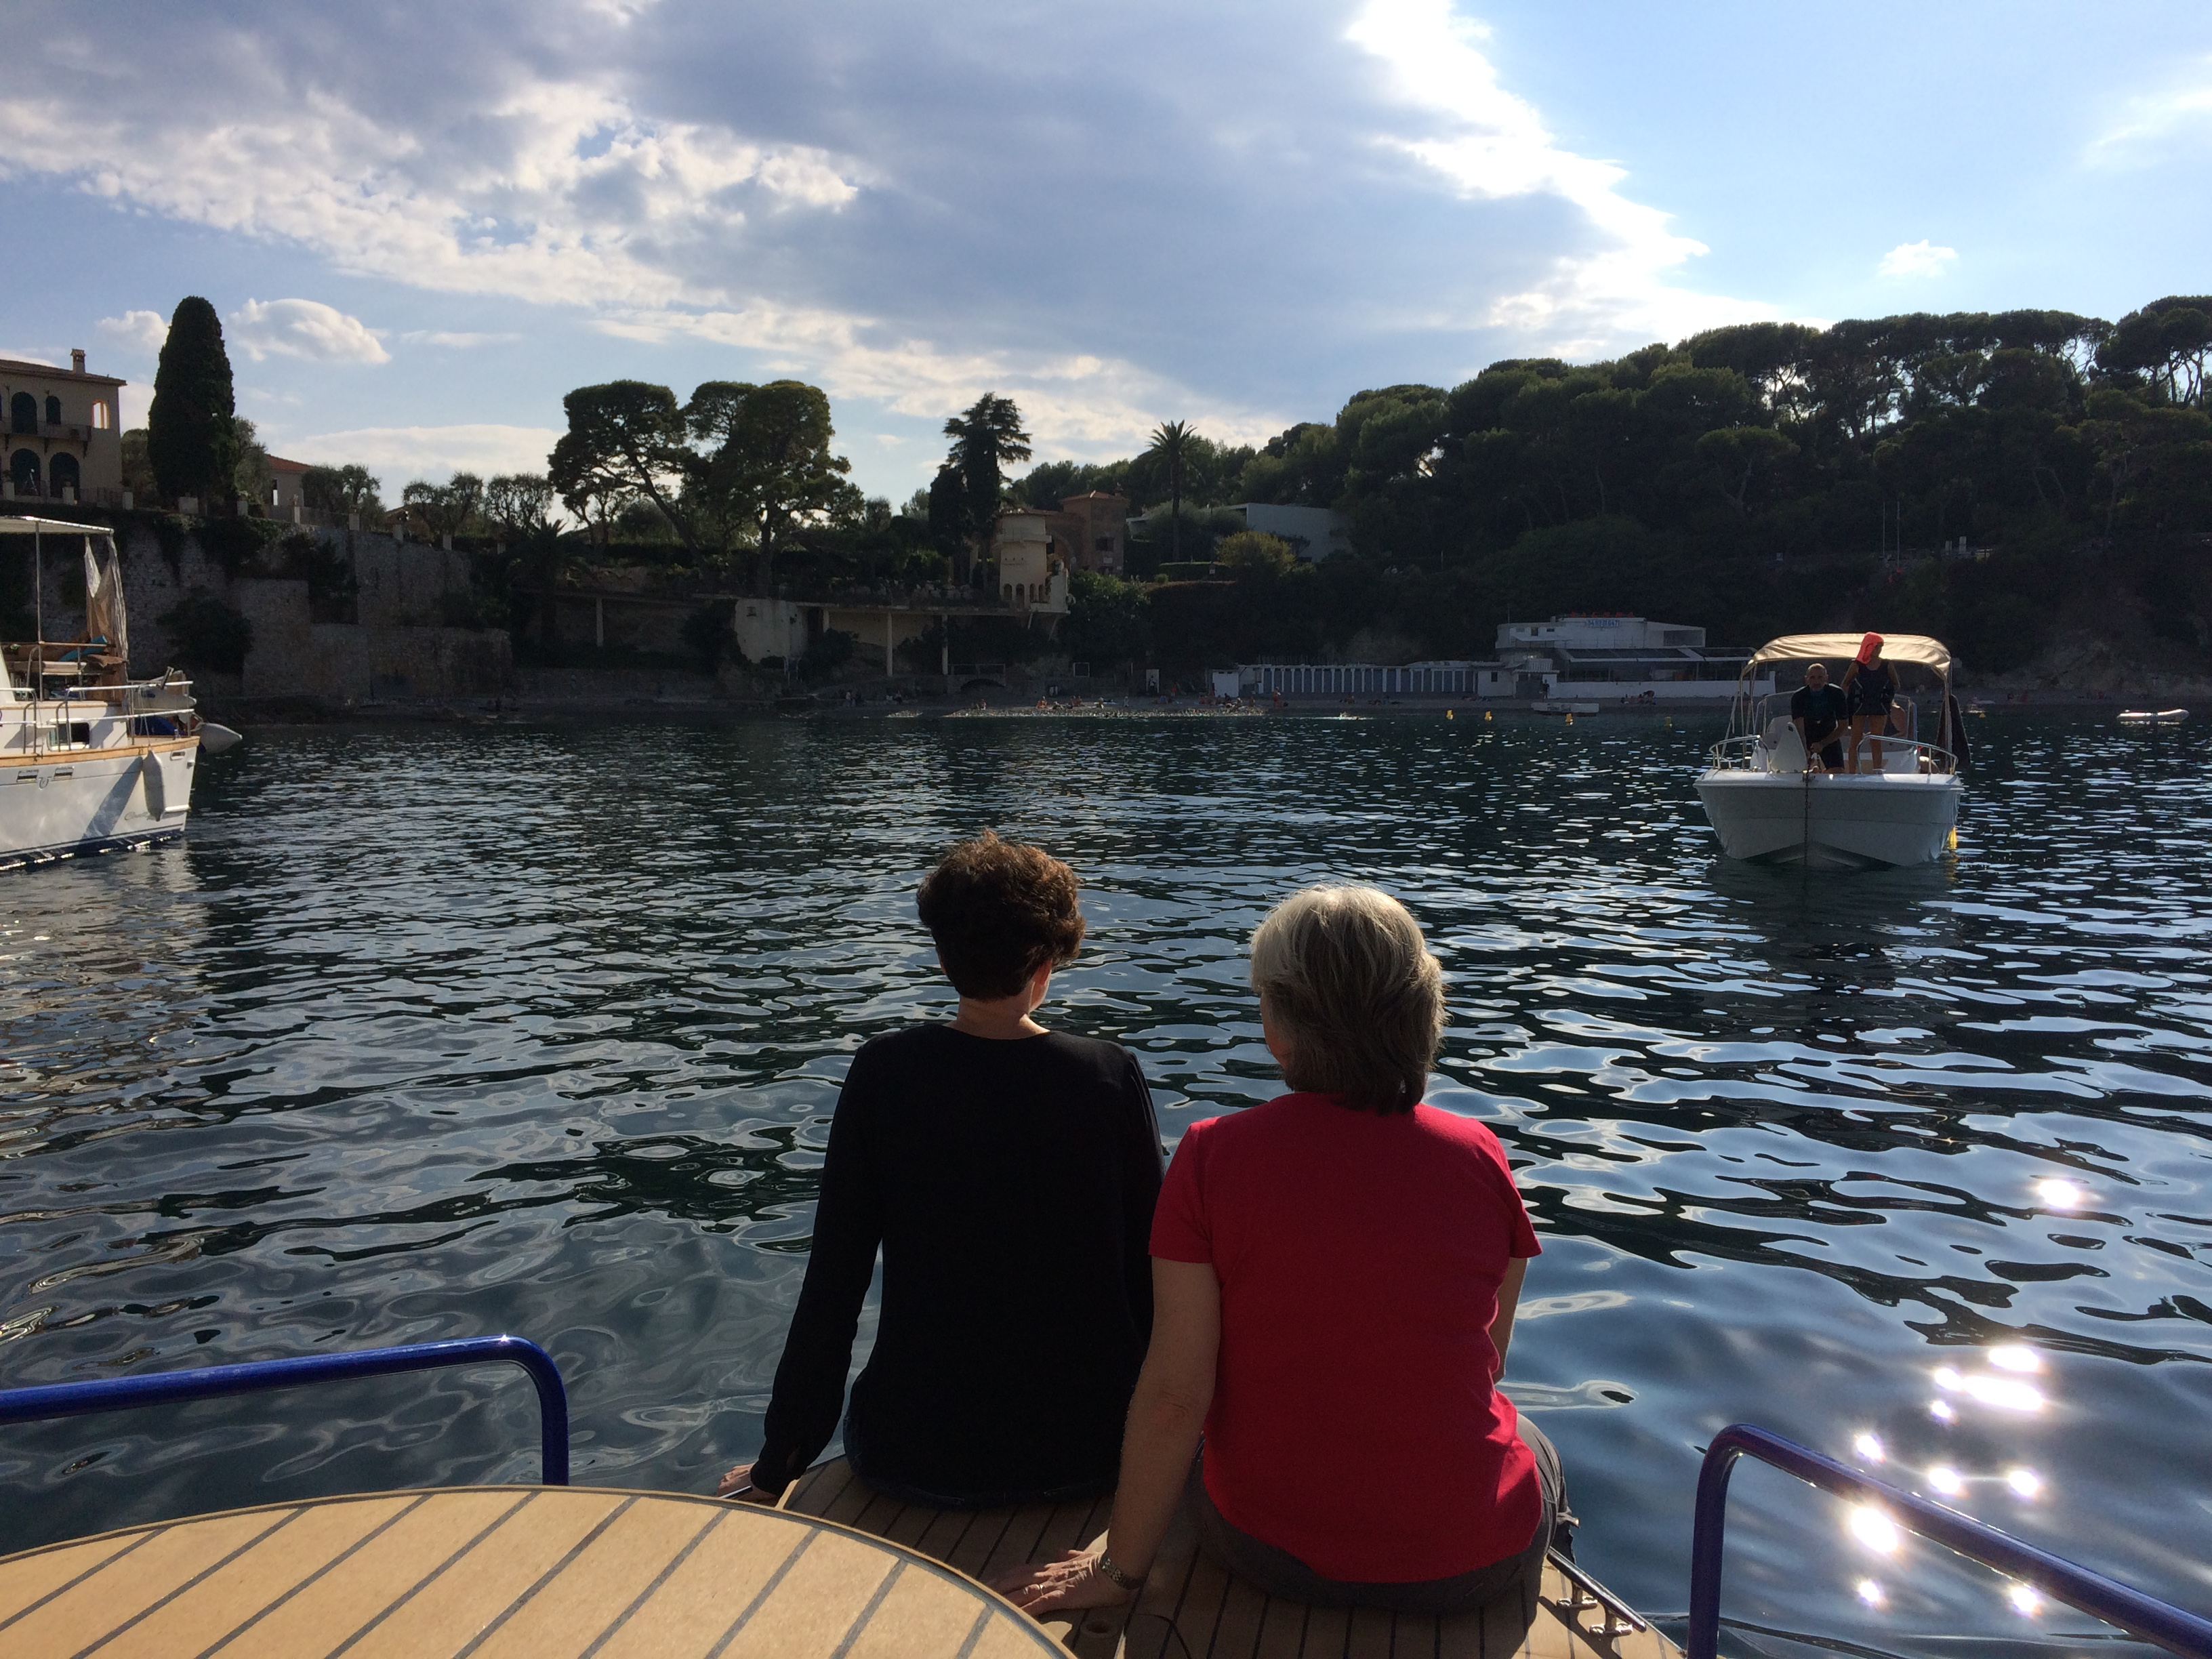 The art of contemplation ... a new approach to the Côte d'Azur